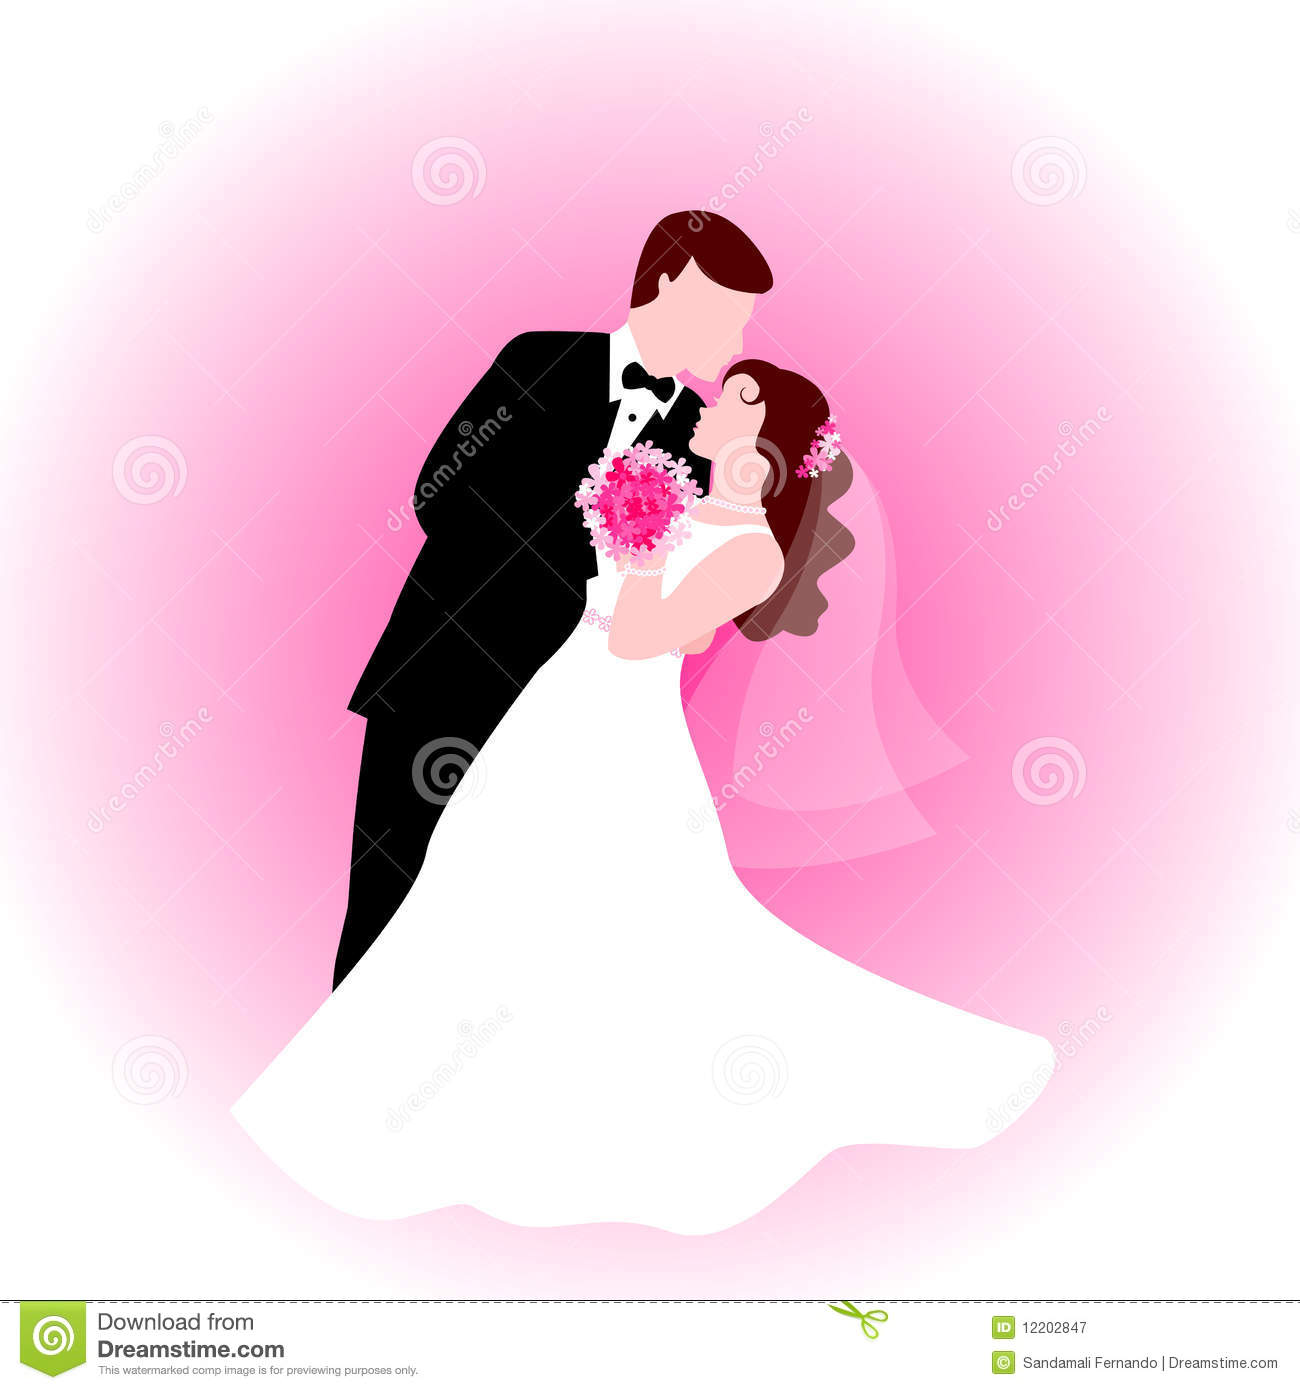 Dancing couple with pink background stock vector illustration of dancing couple with pink background kristyandbryce Gallery